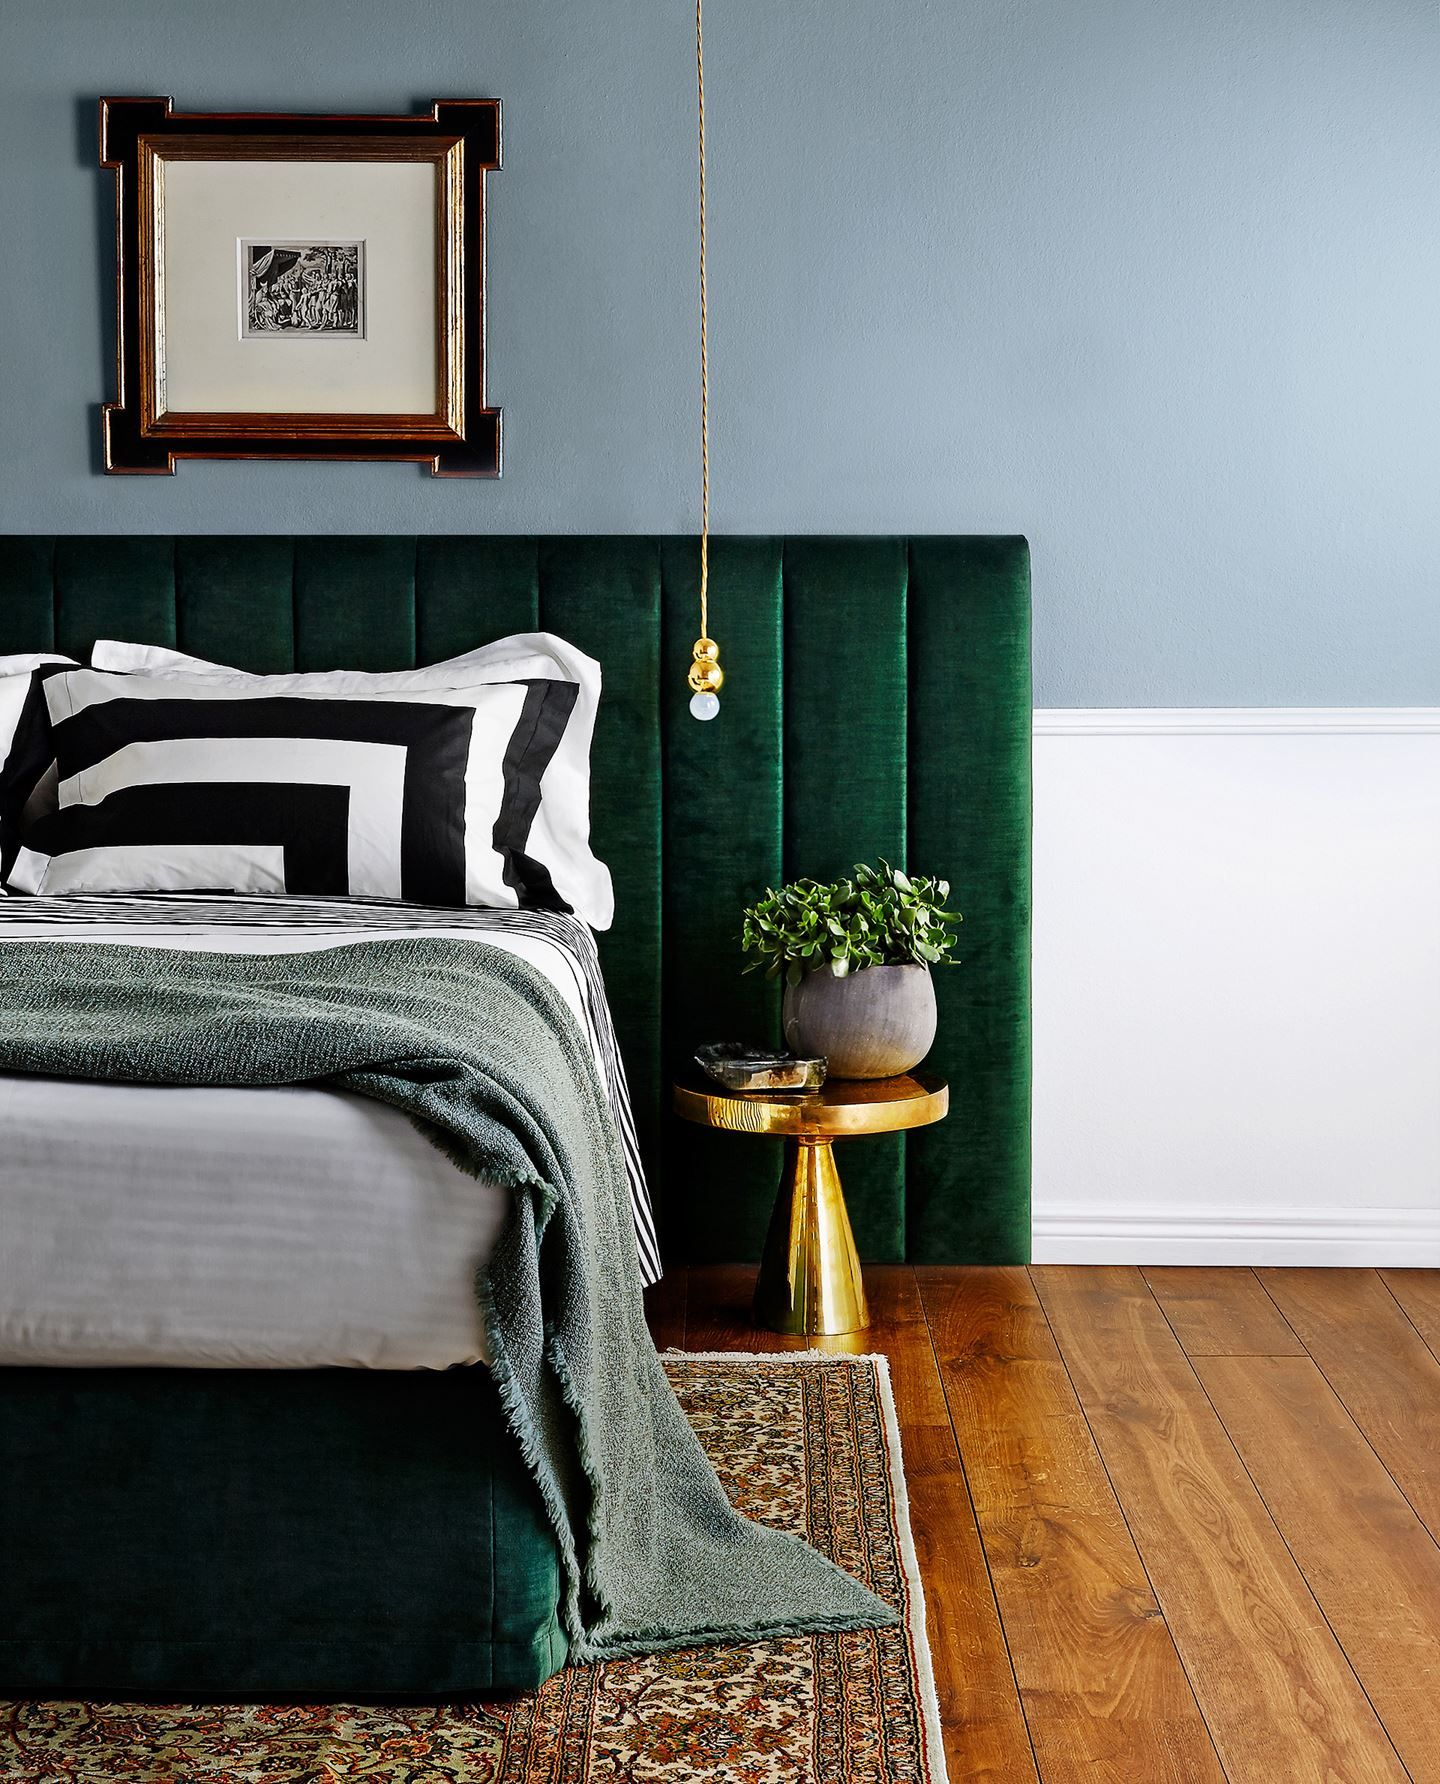 5 beautifully appointed upholstered bedheads